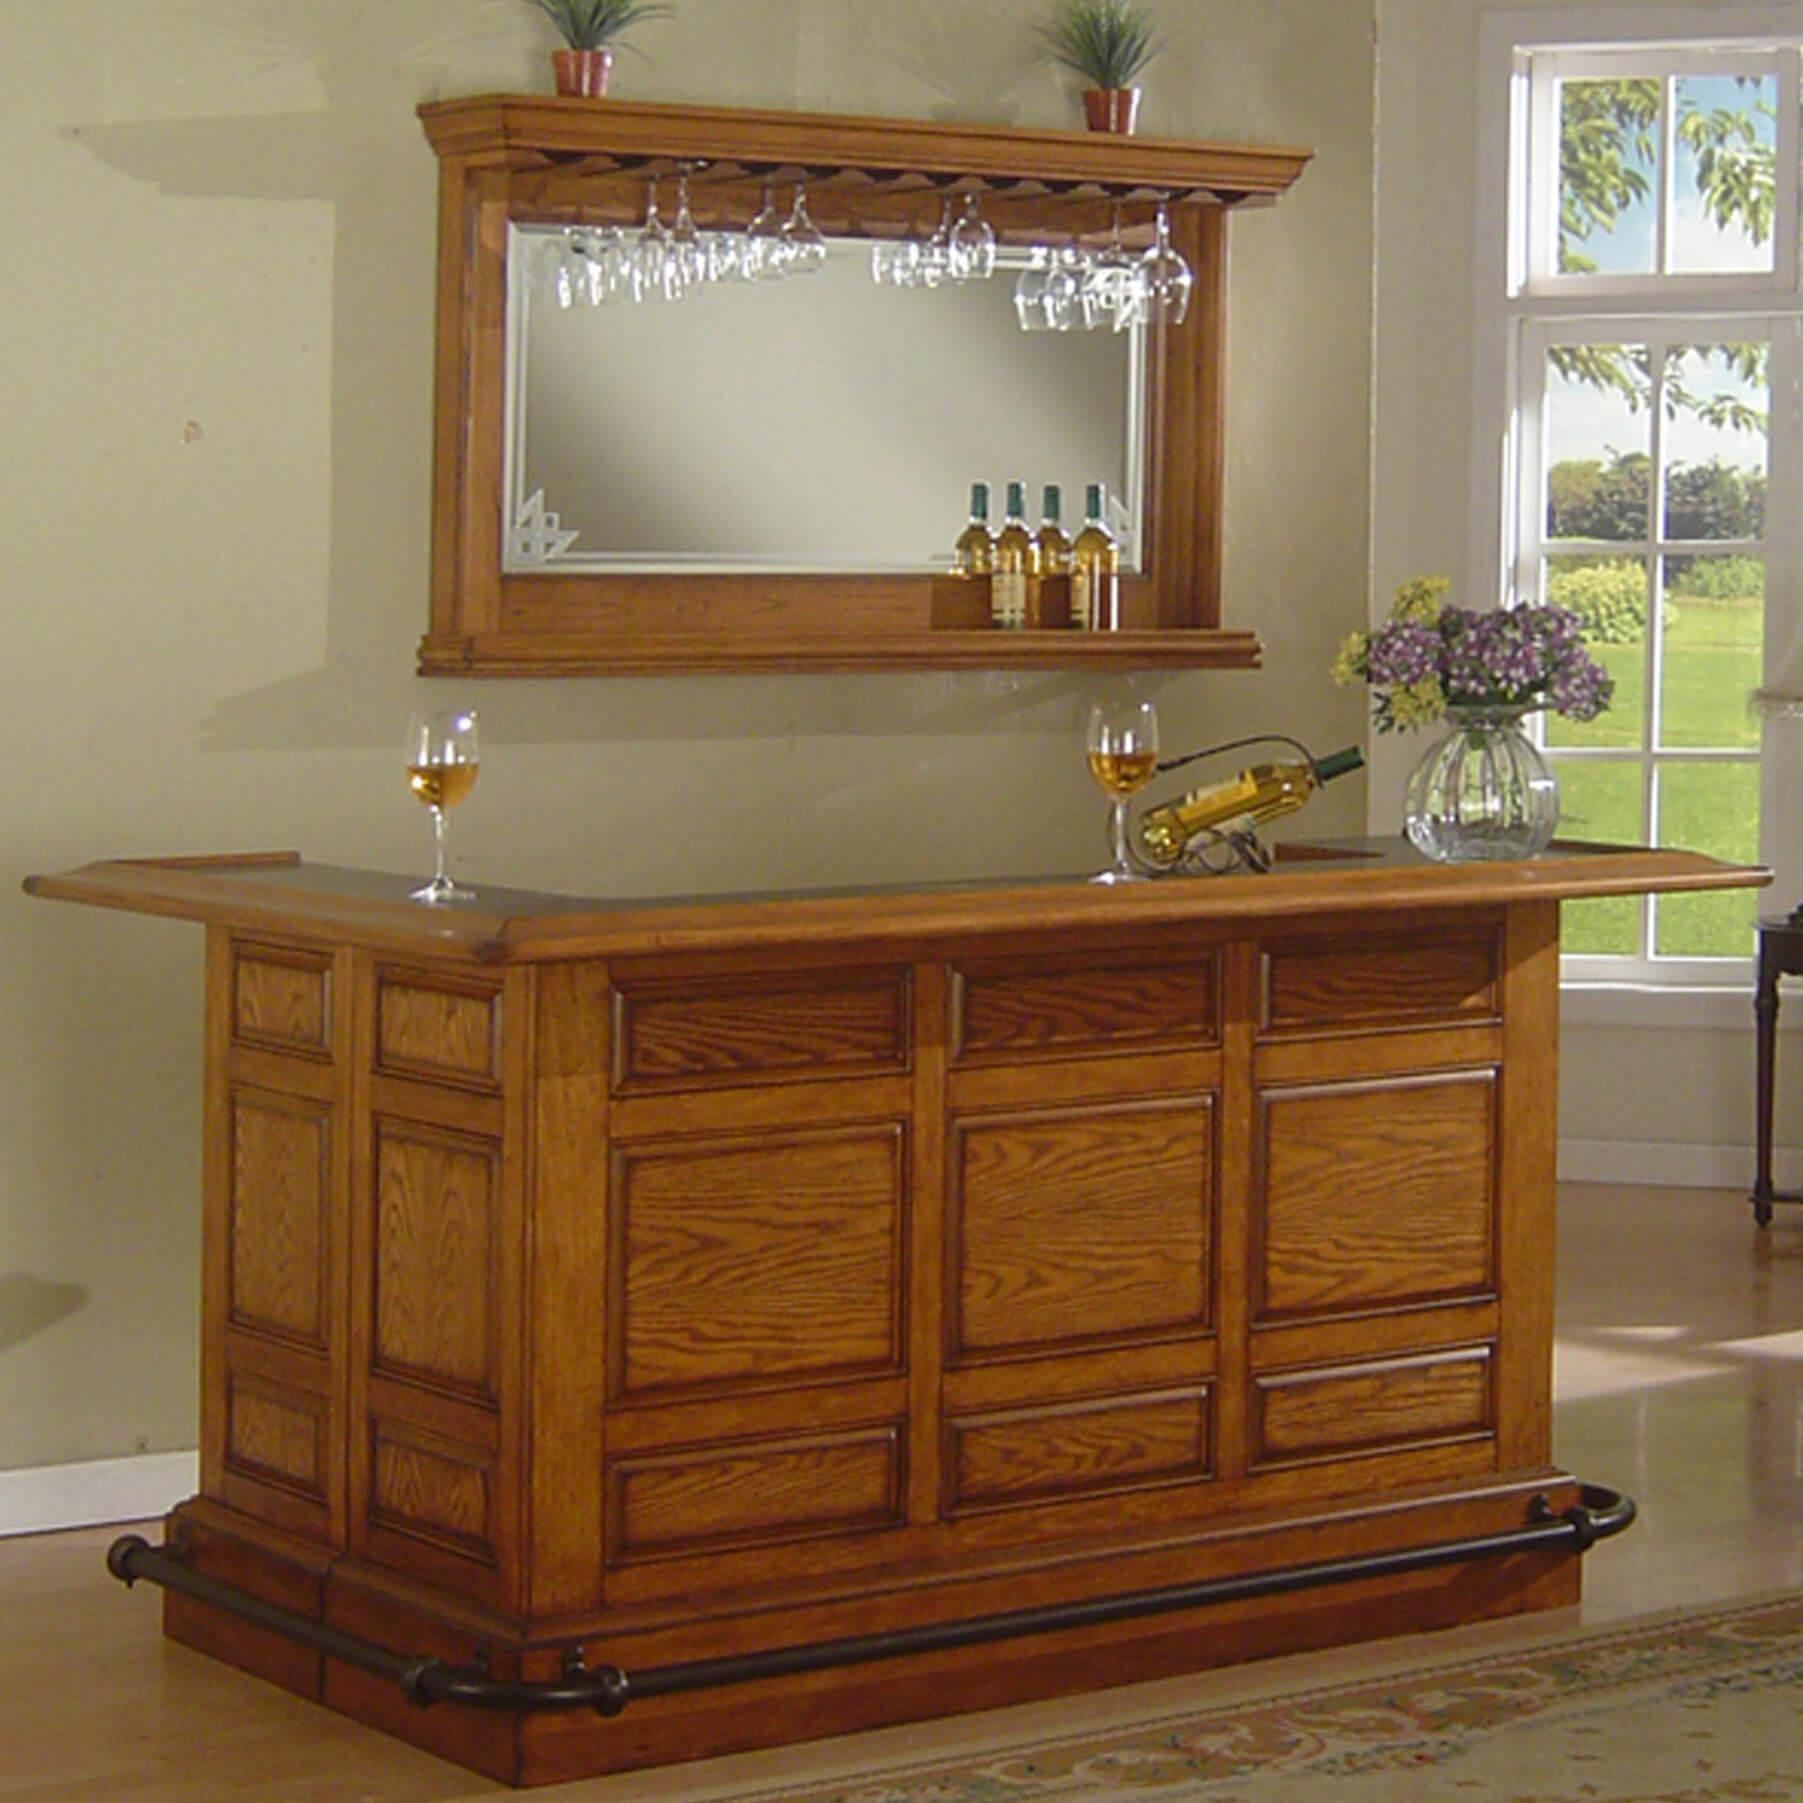 Solid Wood Home Bar With Wrap Around Counter.